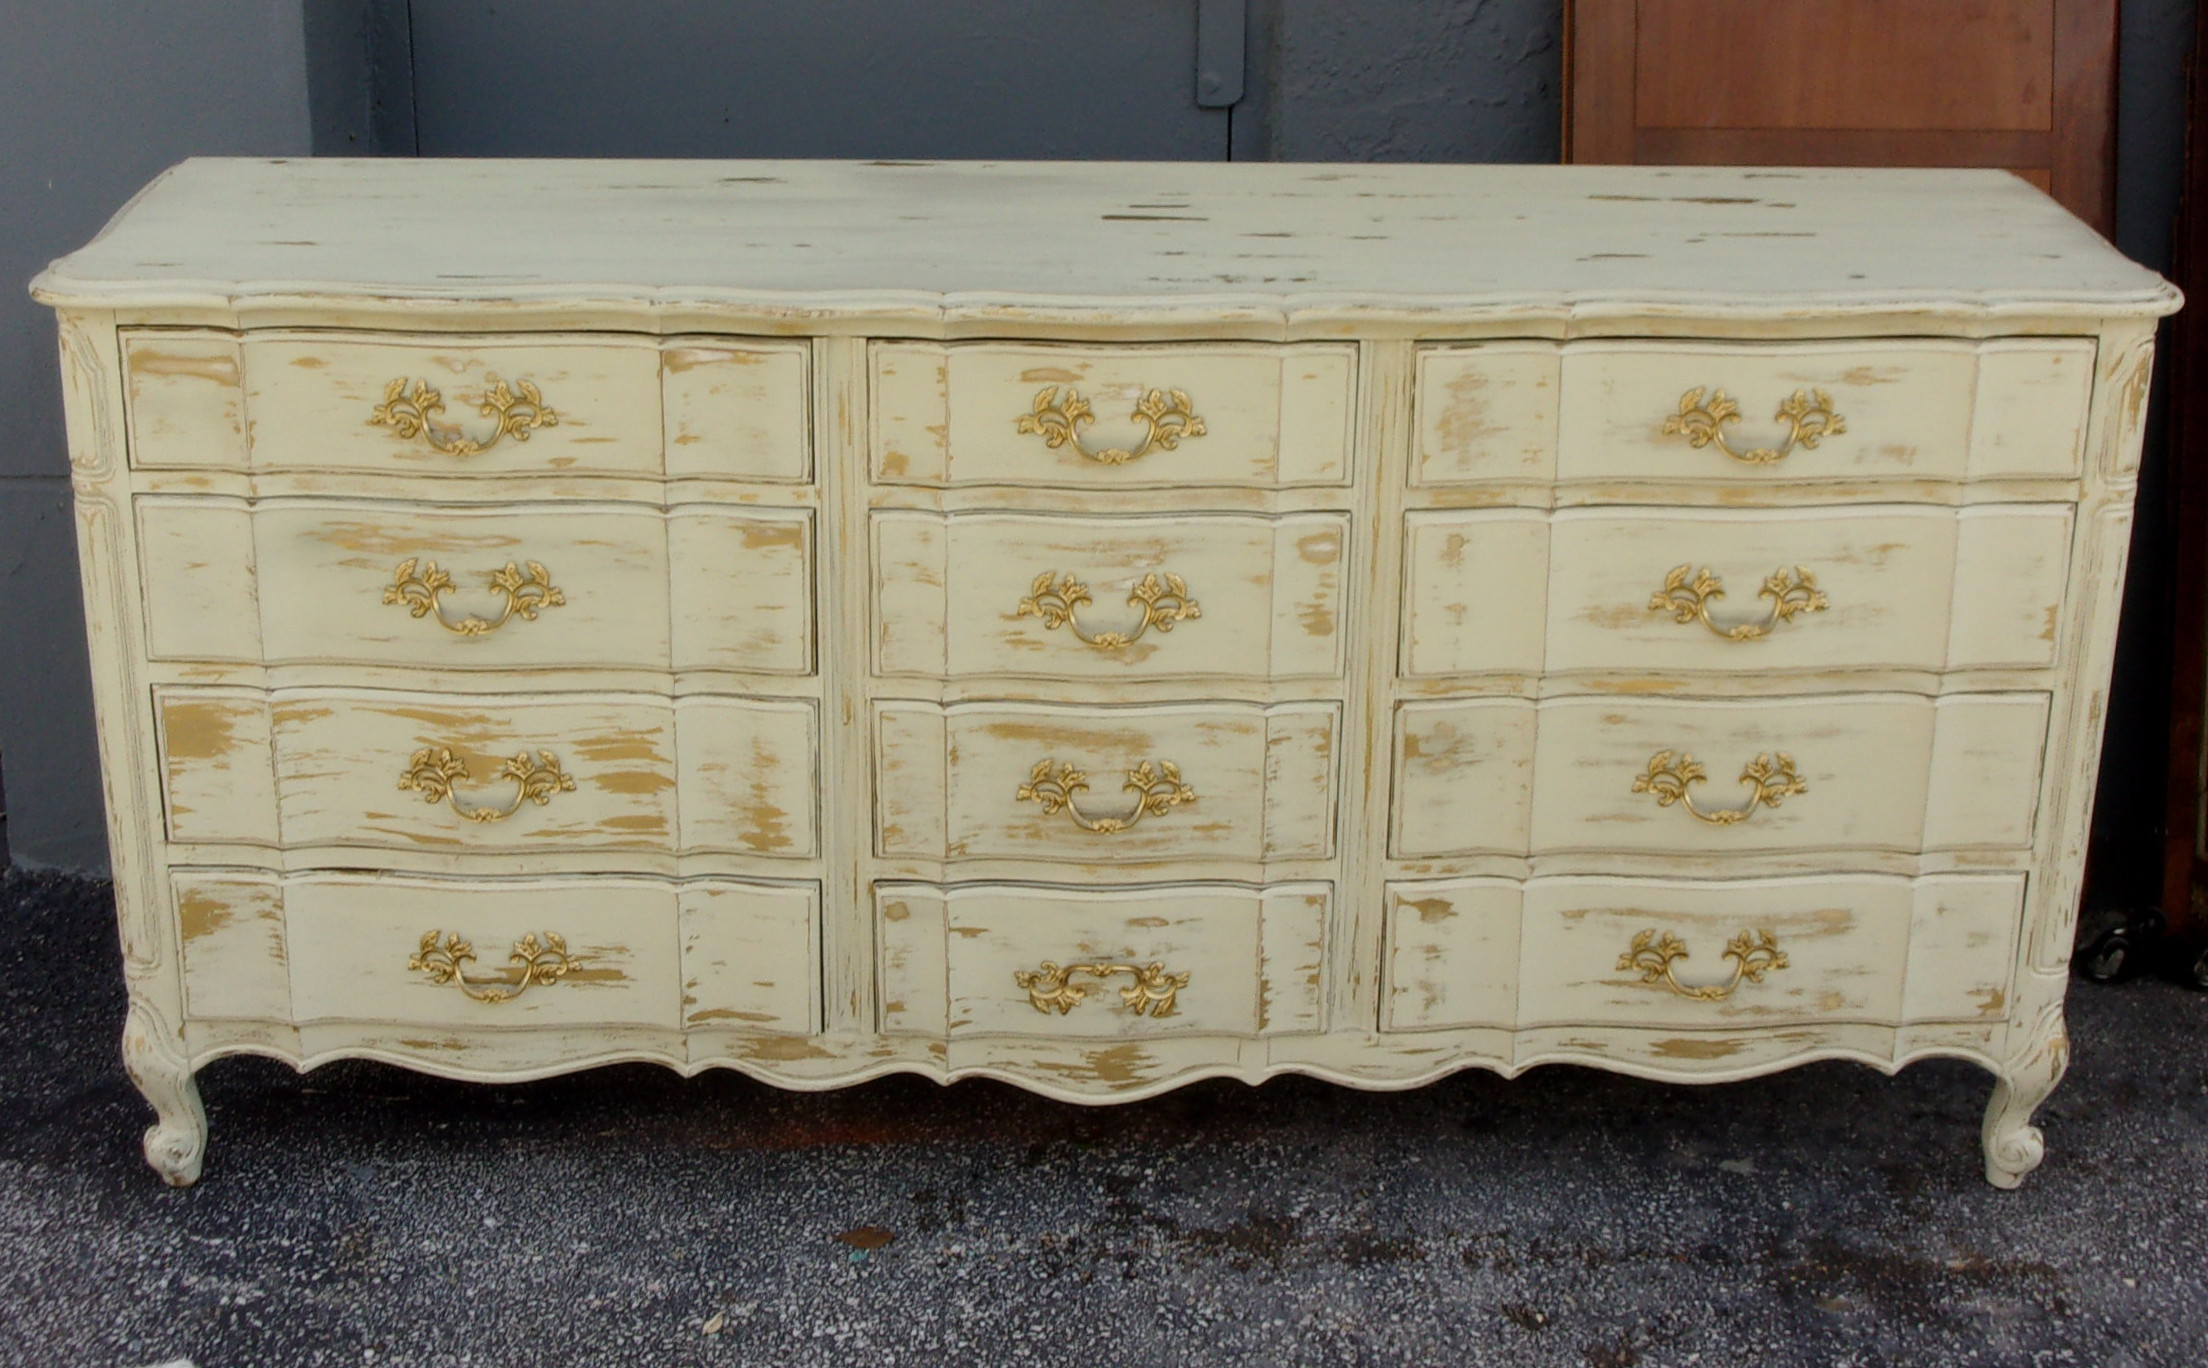 French Provincial Distressed 12-Drawer Dresser | Chairish